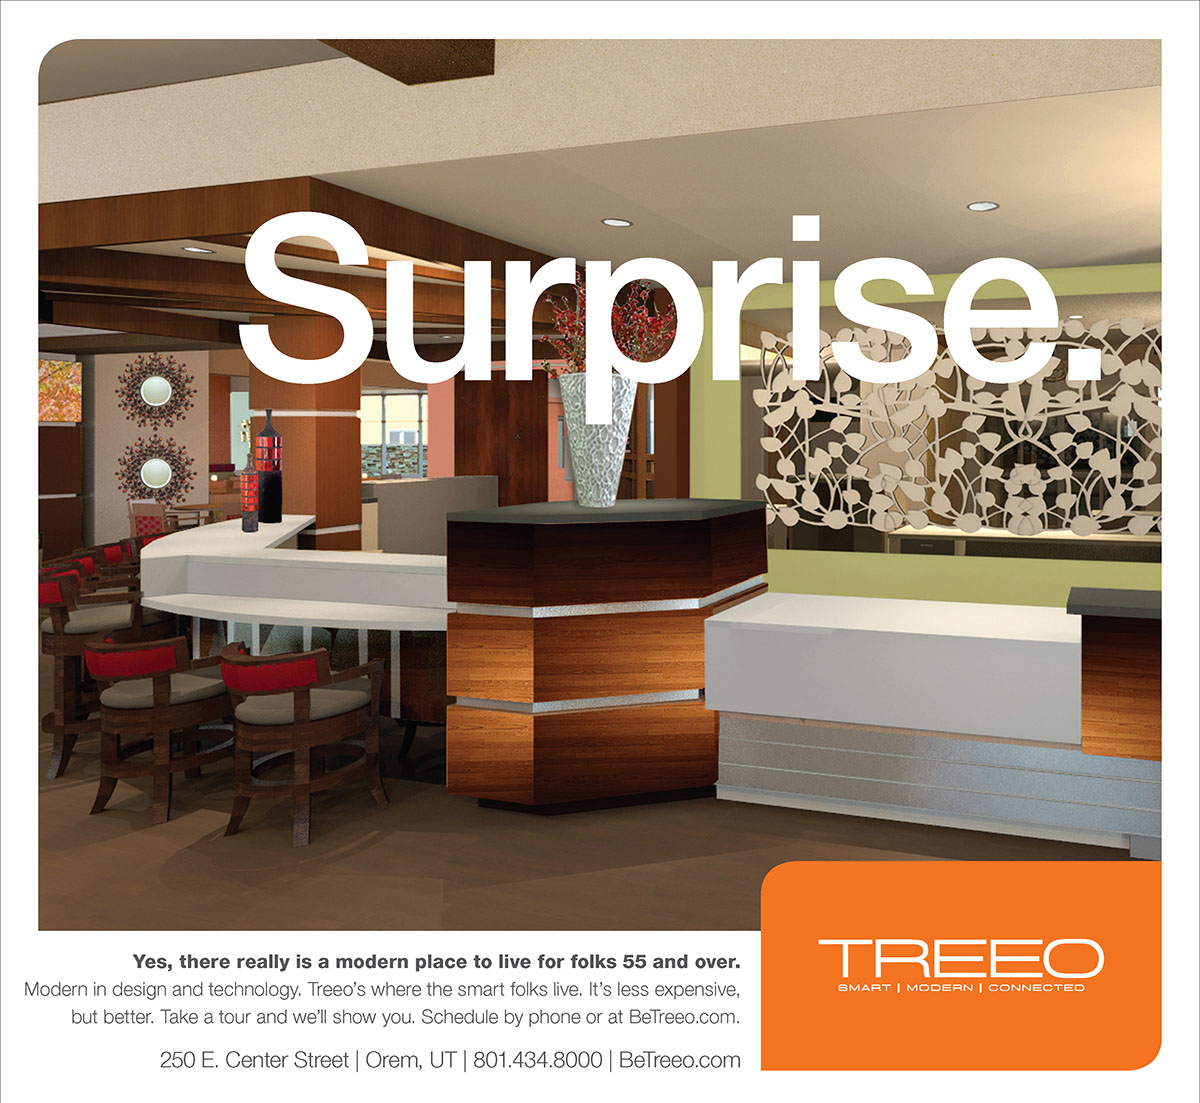 Treeo Senior Living - Surprise Ad